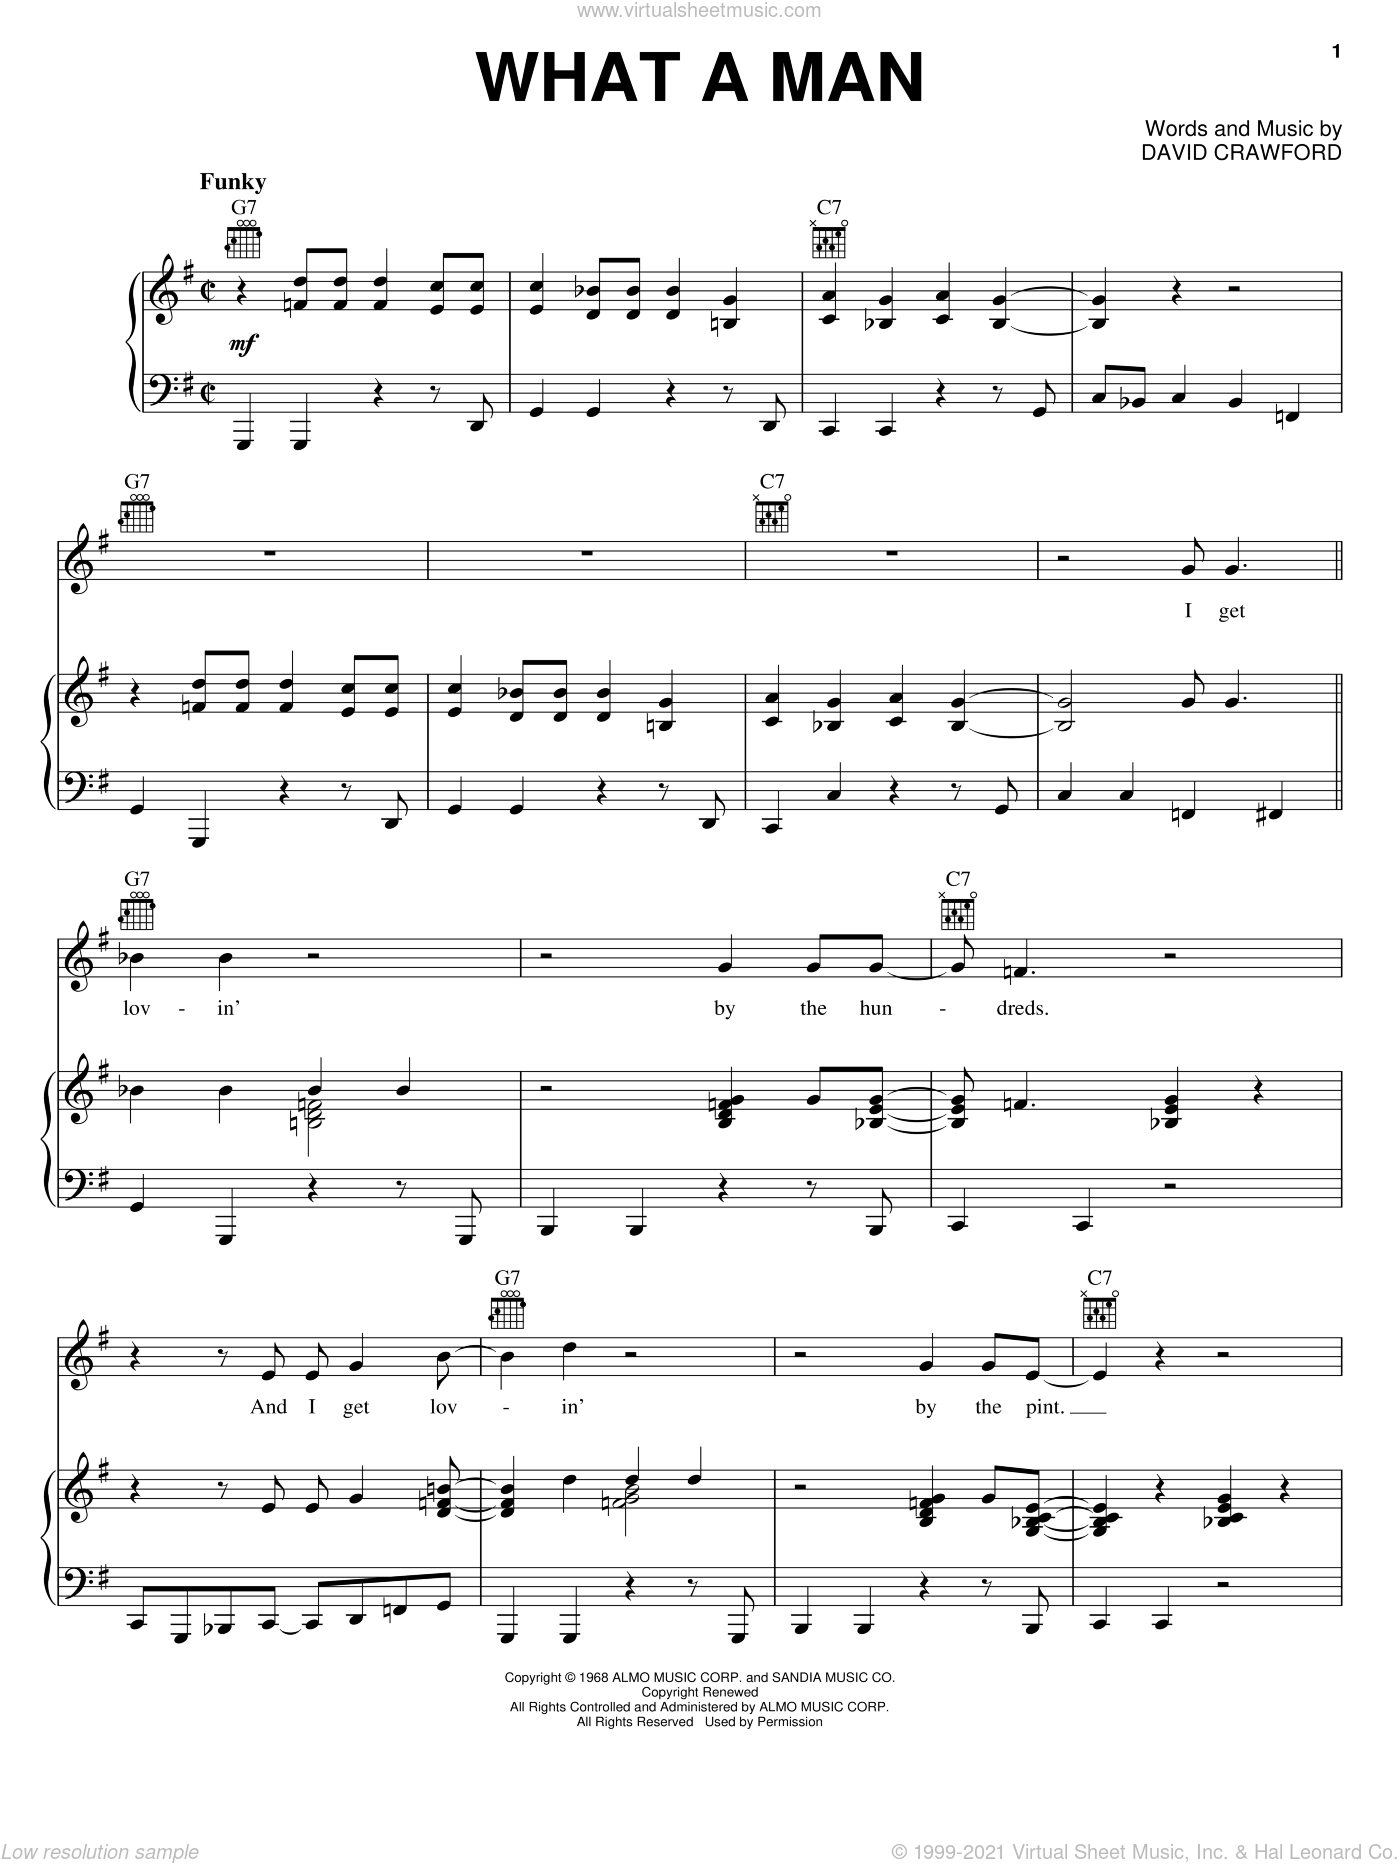 What A Man sheet music for voice, piano or guitar by David Crawford